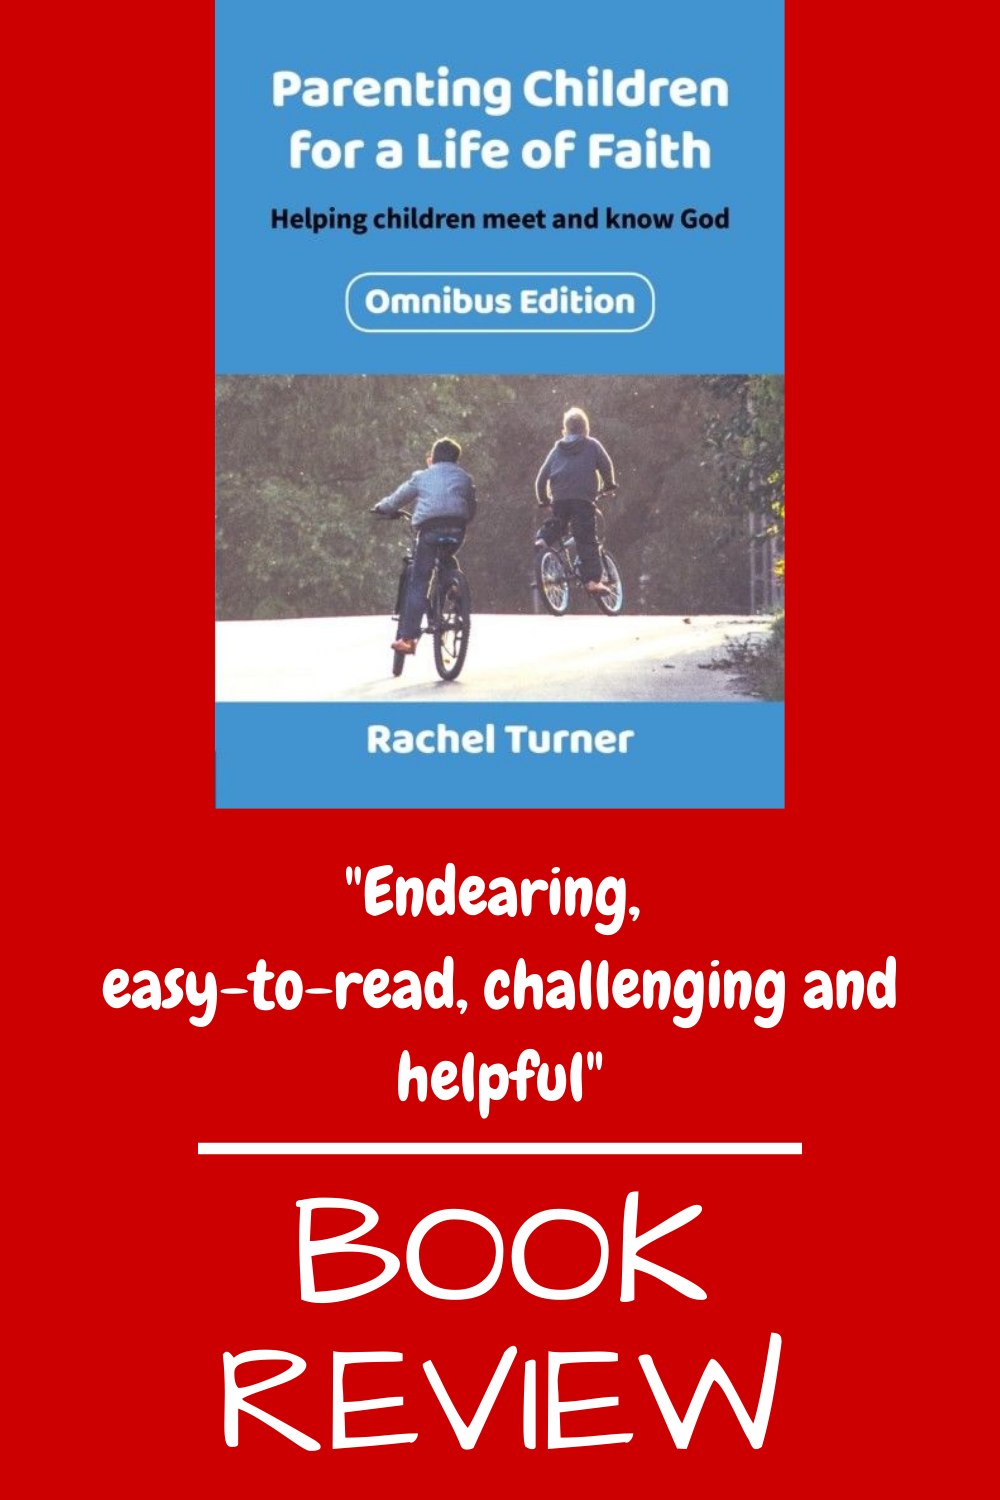 Parenting children for a life of faith by Rachel Turner (BRF). Book review from a Christian parent of four.